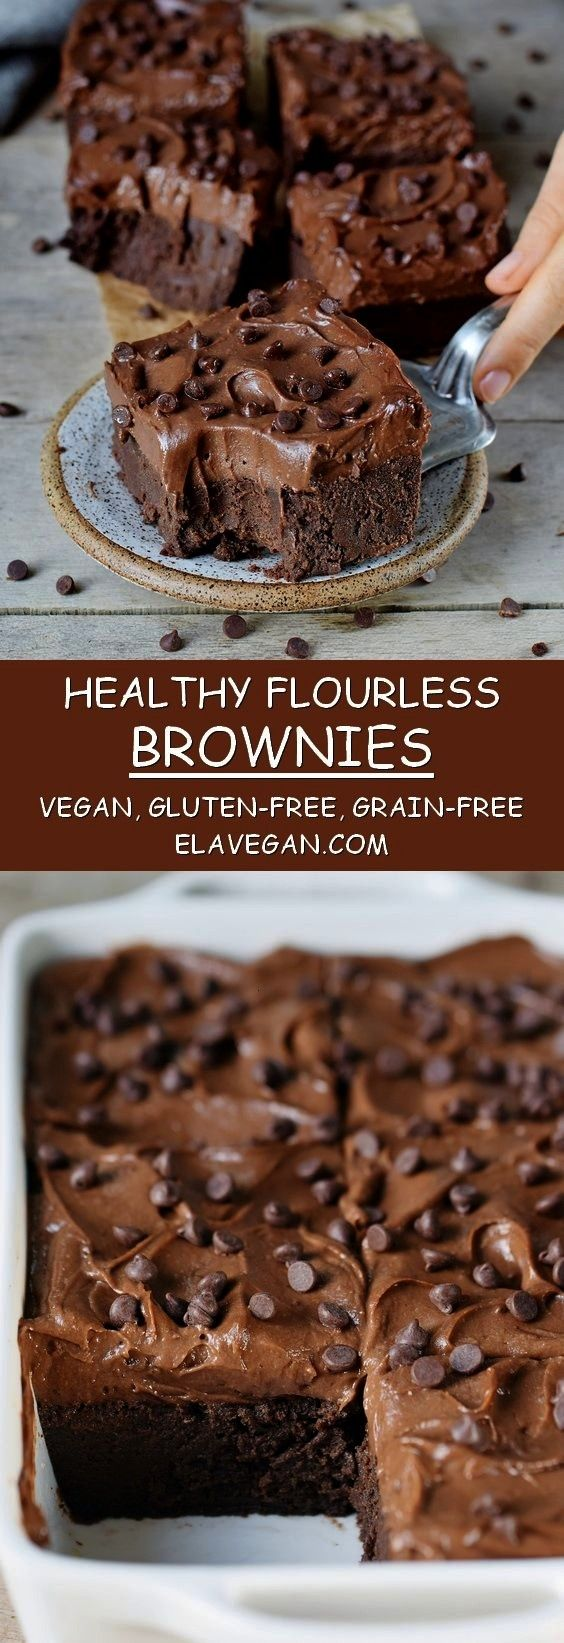 flourless brownies with a sweet potato frosting are absolutely delectable. They are vegan, gluten-f